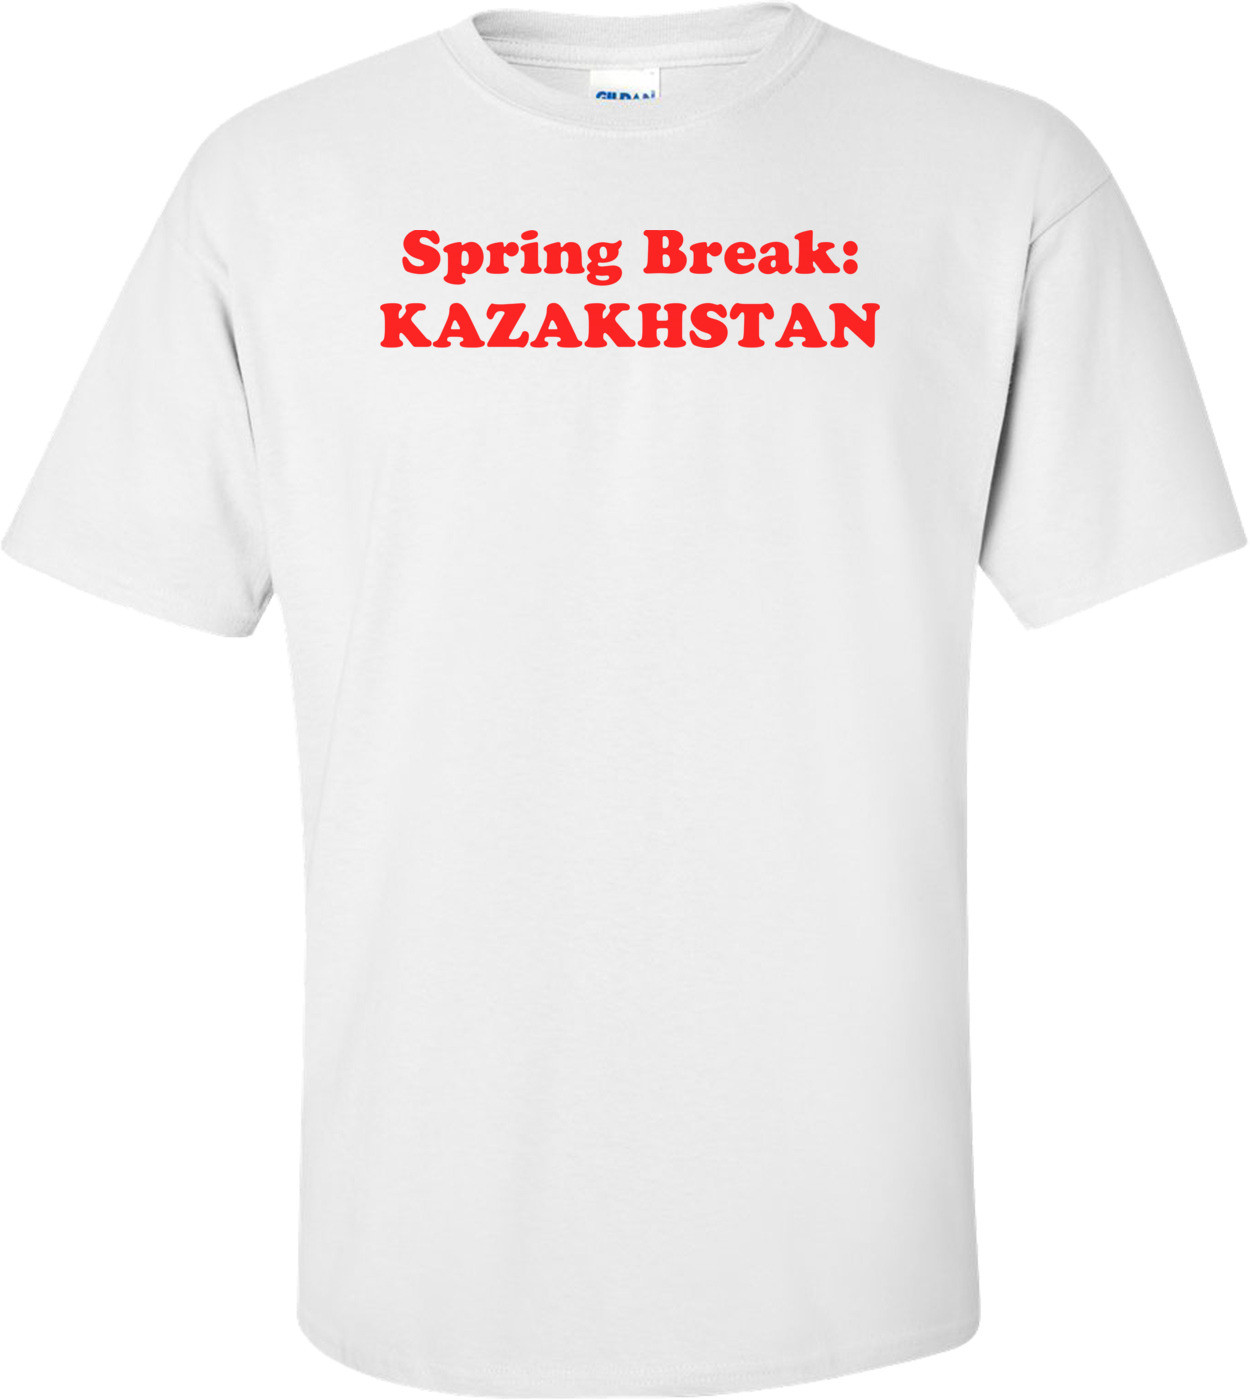 Spring Break: KAZAKHSTAN Shirt